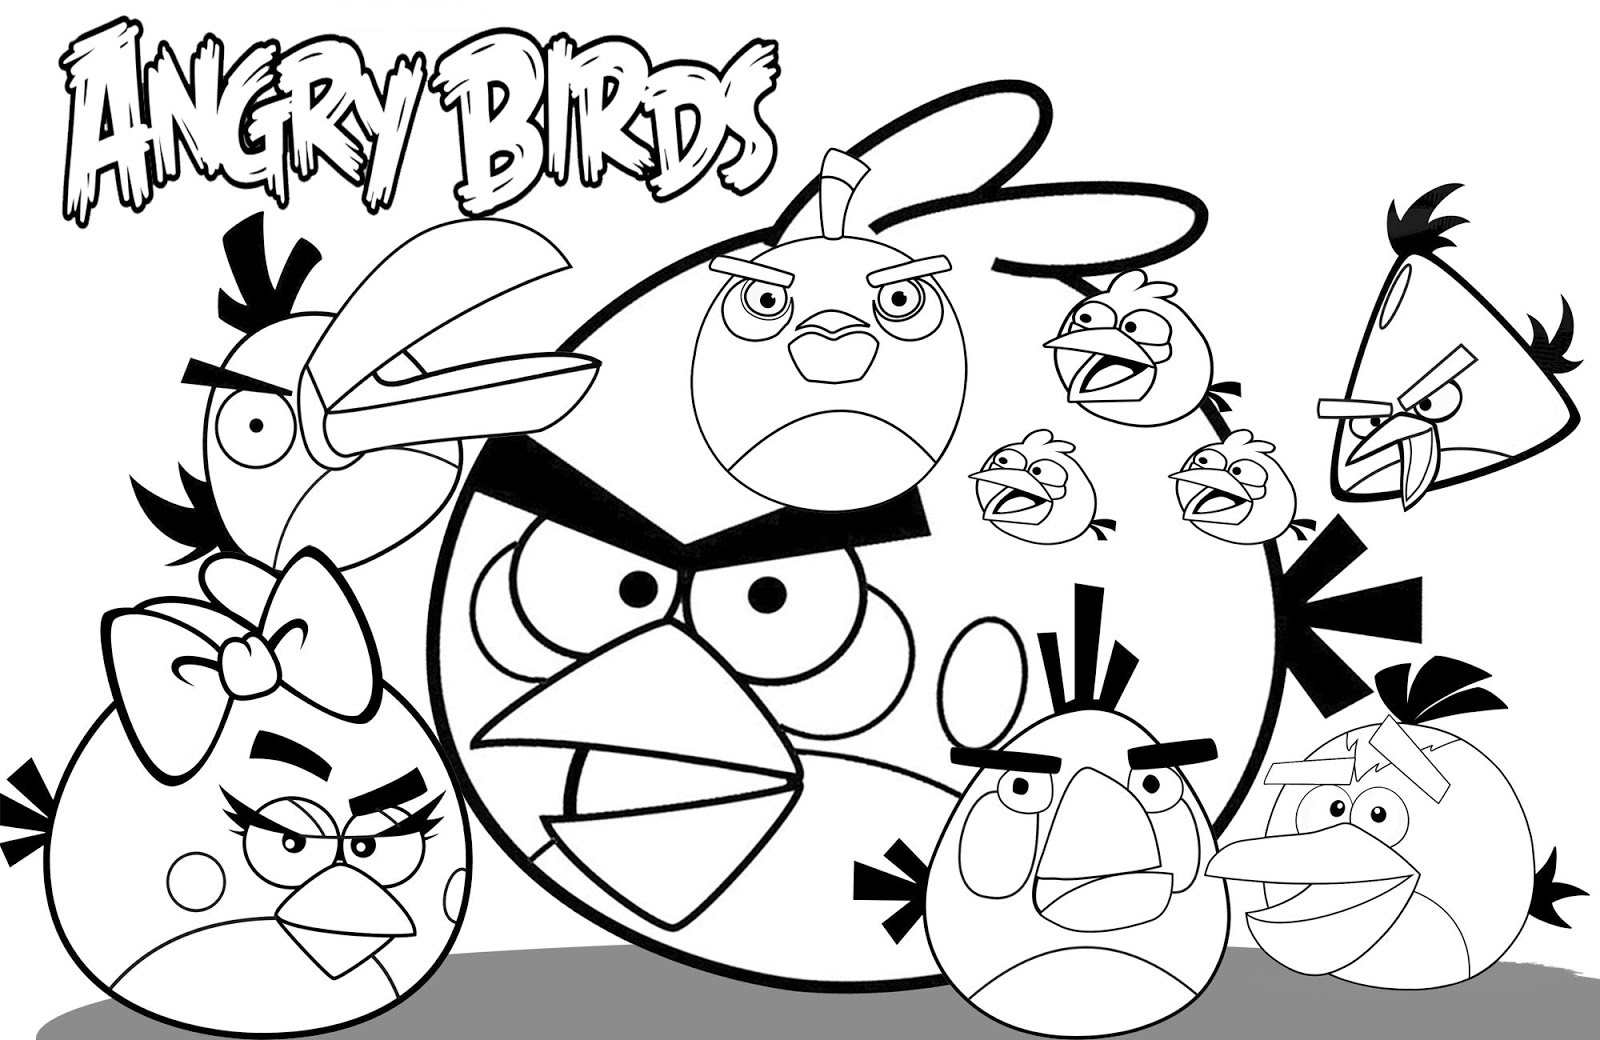 angry birds pictures to print angry birds coloring pages for your small kids pictures birds to print angry